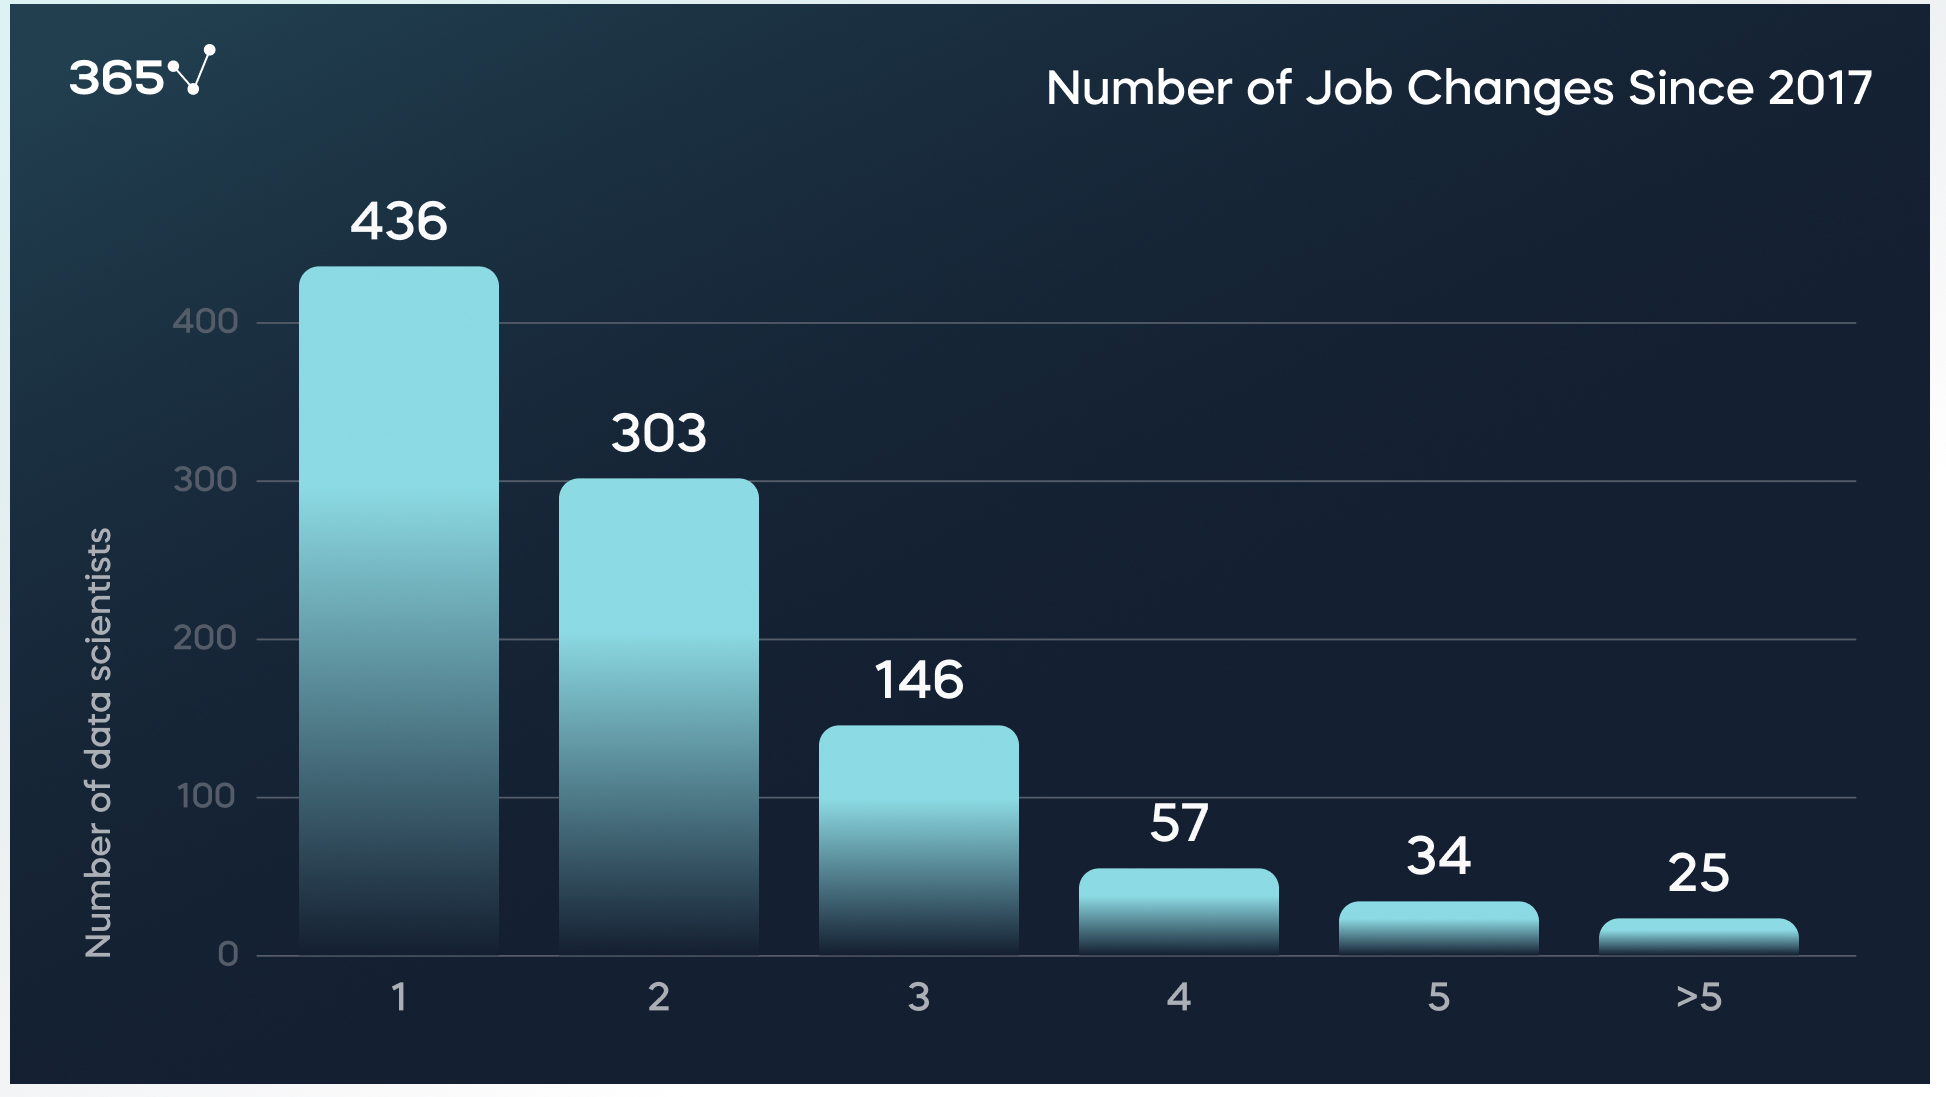 Research 1001 data scientists: Job Changes since 2017